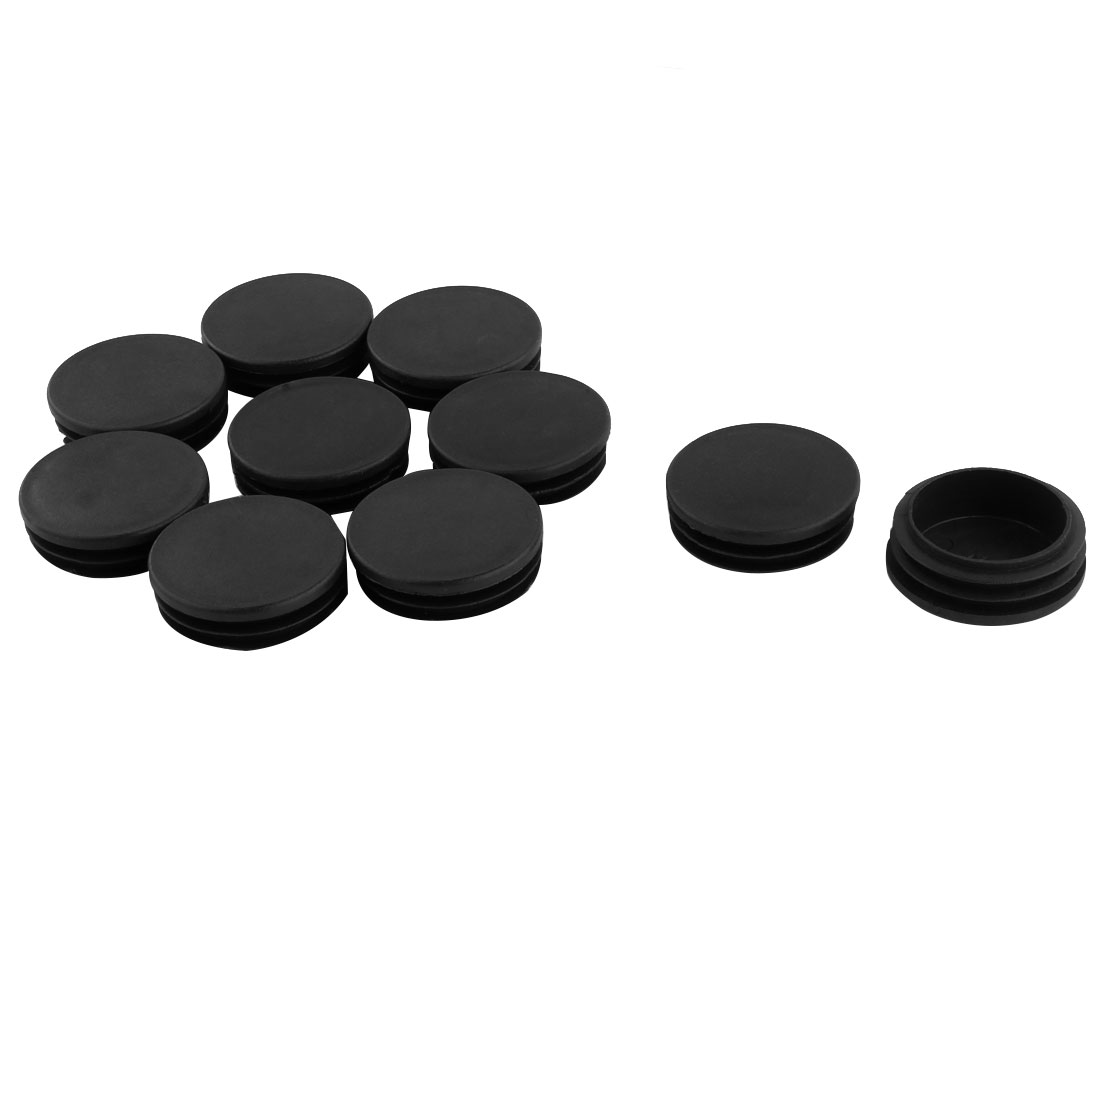 Furniture Table Chair Plastic Round Tube Insert Tubing Cap Pipe Cover Black 48mm Dia 10pcs